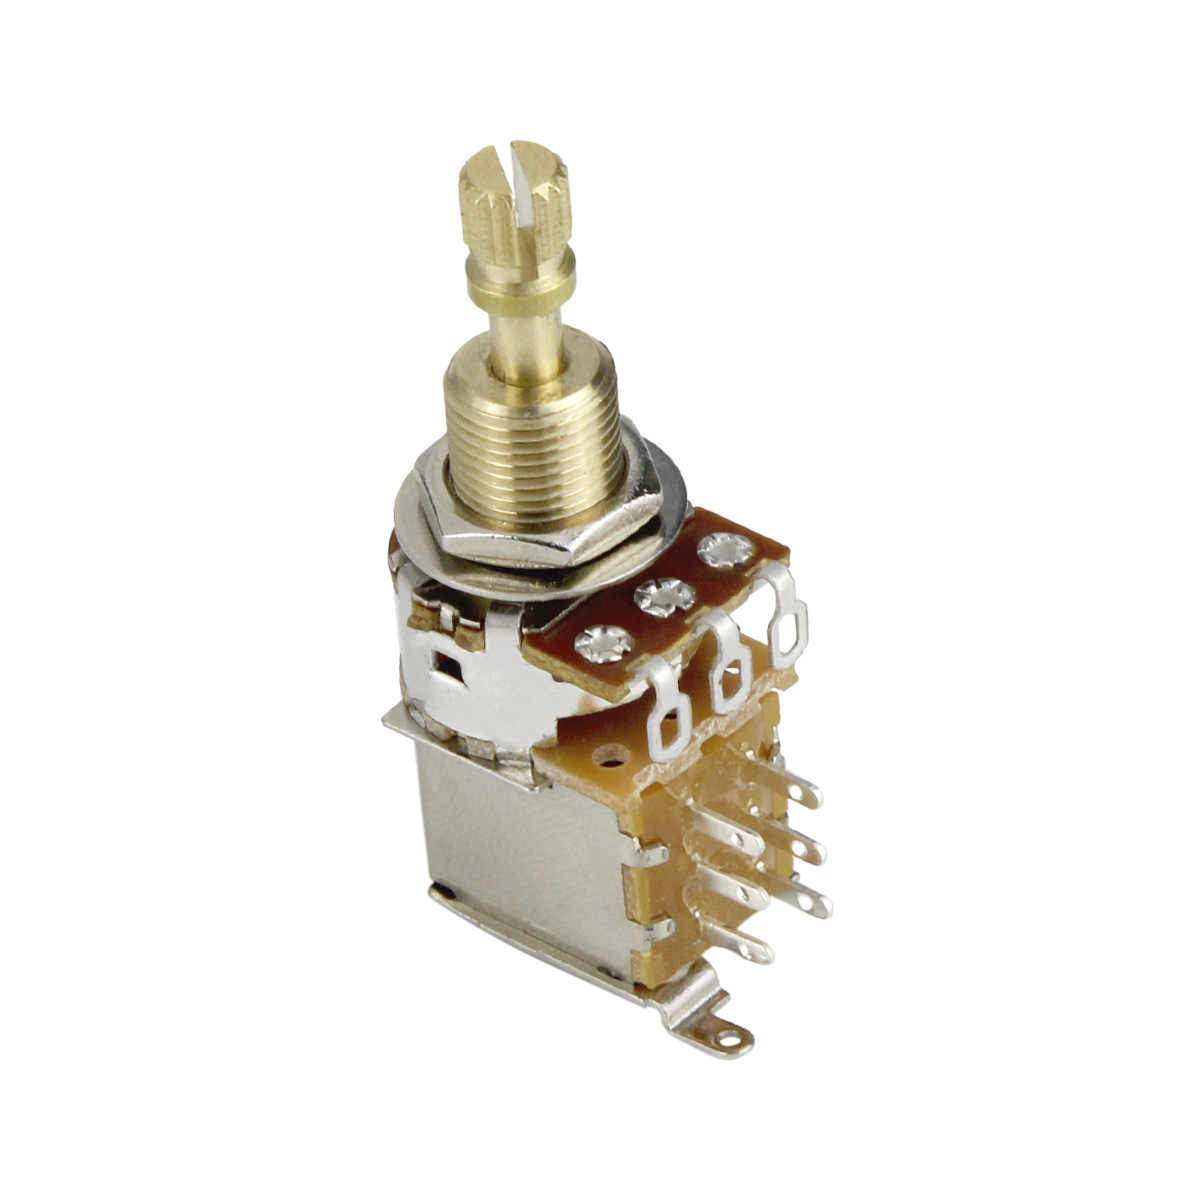 FLEOR 1PC potentiomètre de guitare potentiomètre poussoir A250K / B250K / A500K / B500K cuivre Long arbre fendu (pas de traction plus)